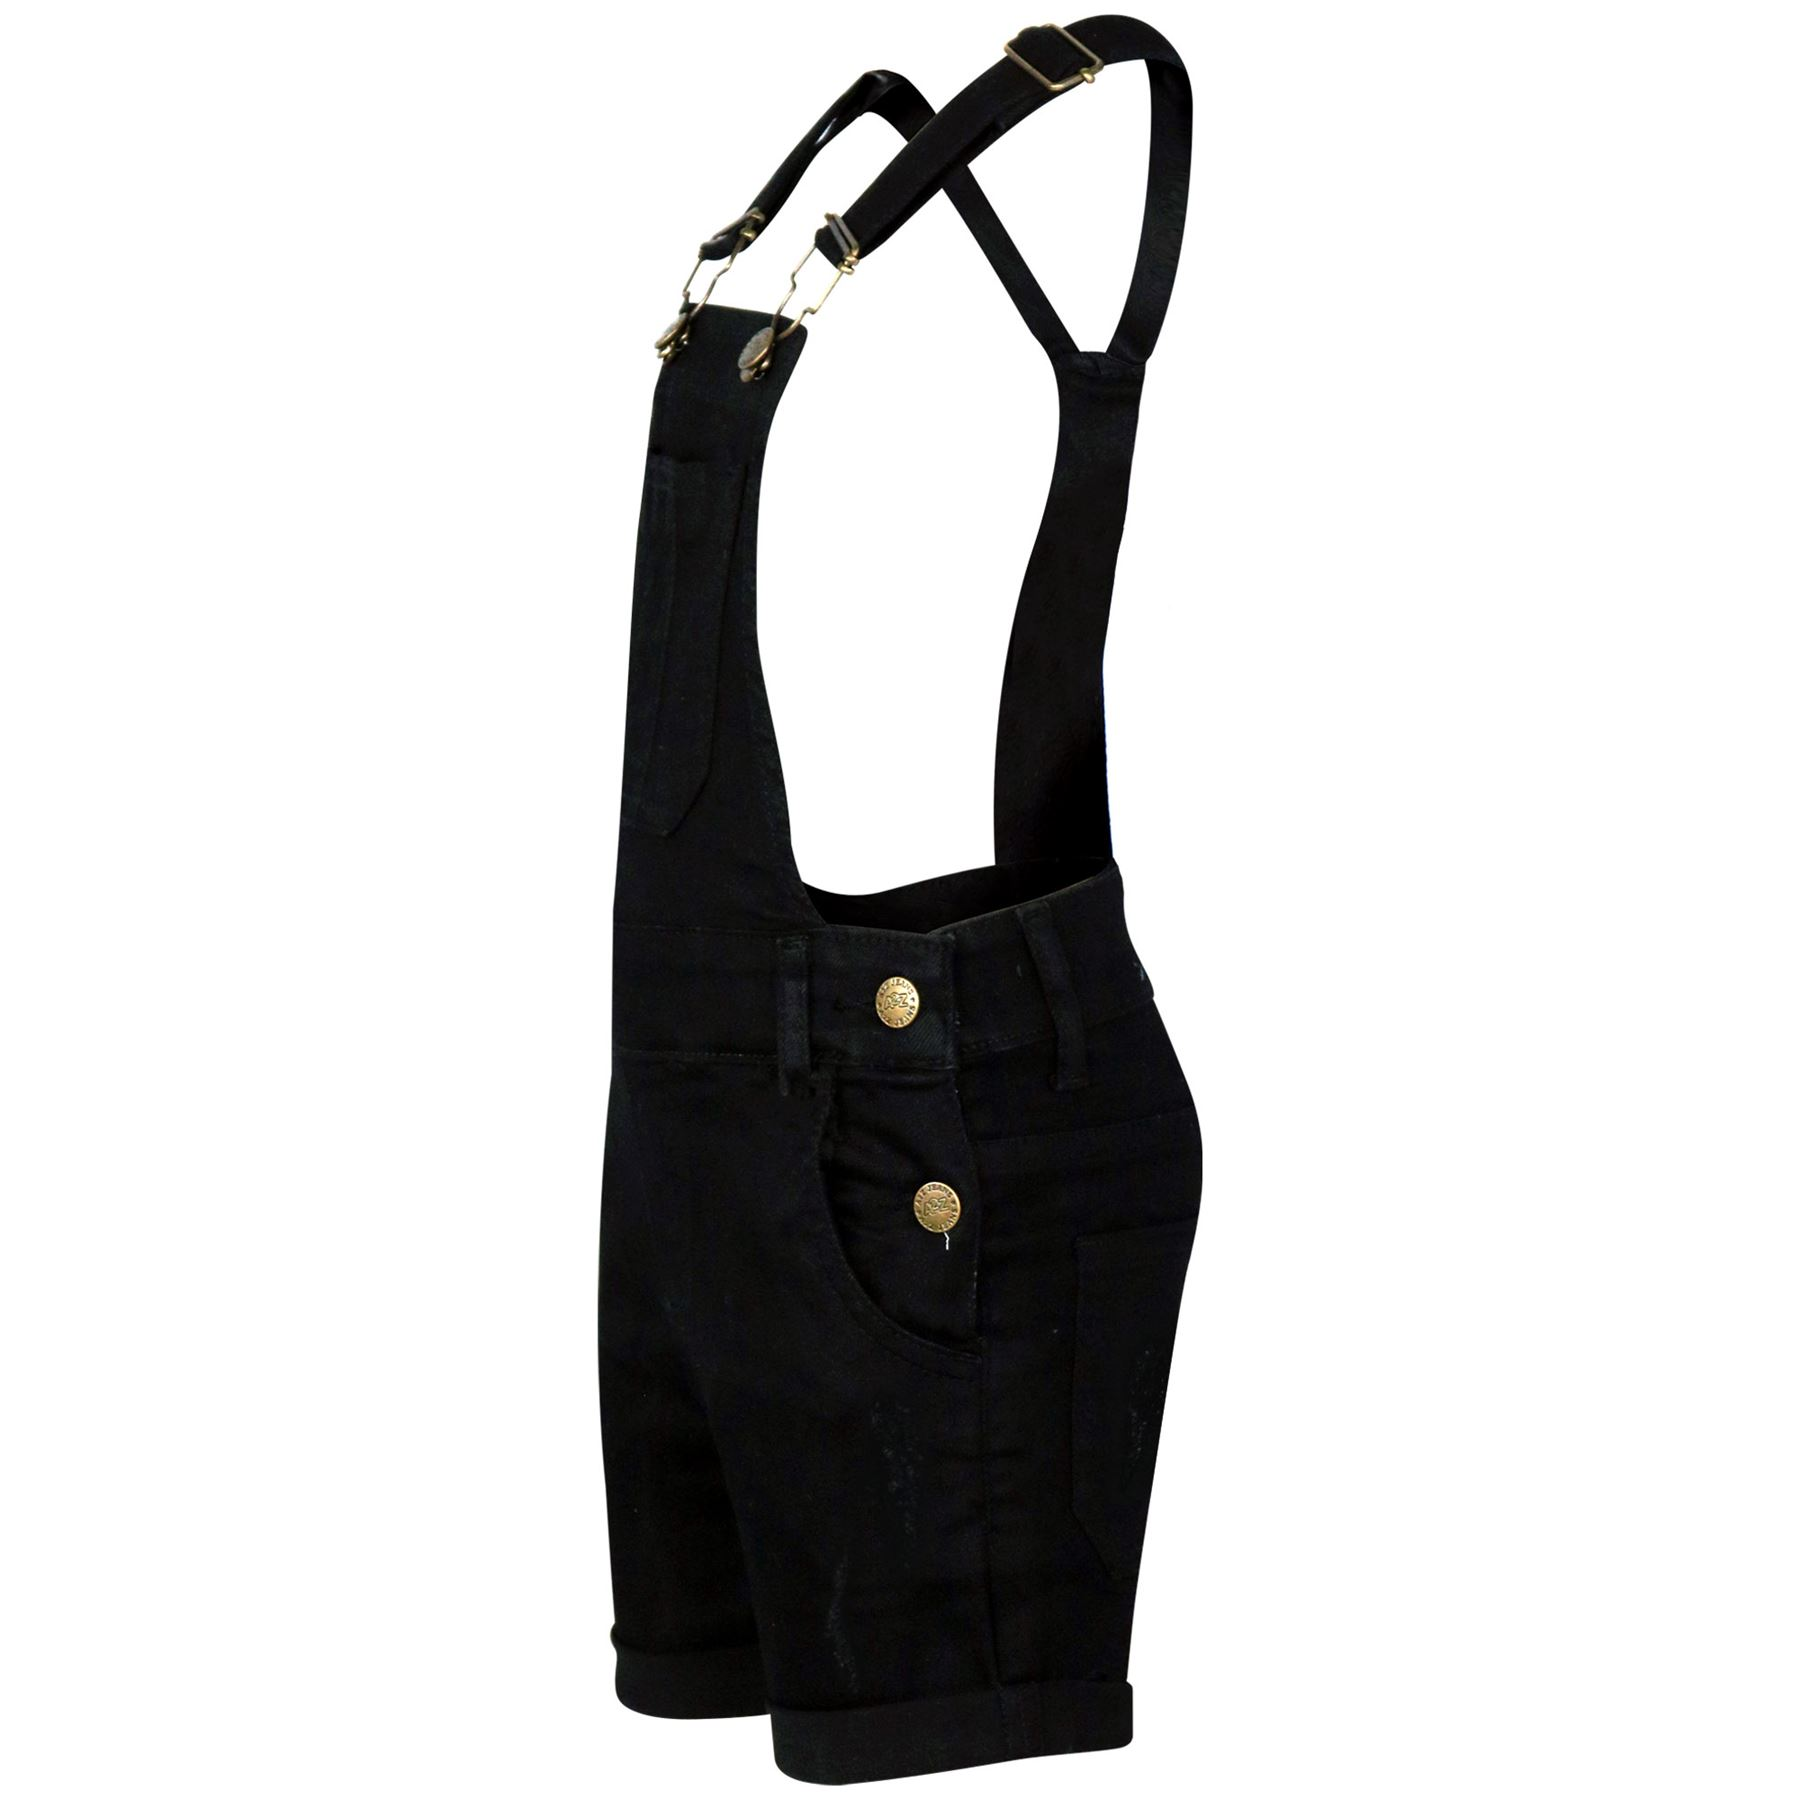 Enfants-Filles-Dungaree-Short-Black-denim-dechire-jeans-stretch-Overall-Jumpsuit-5-13